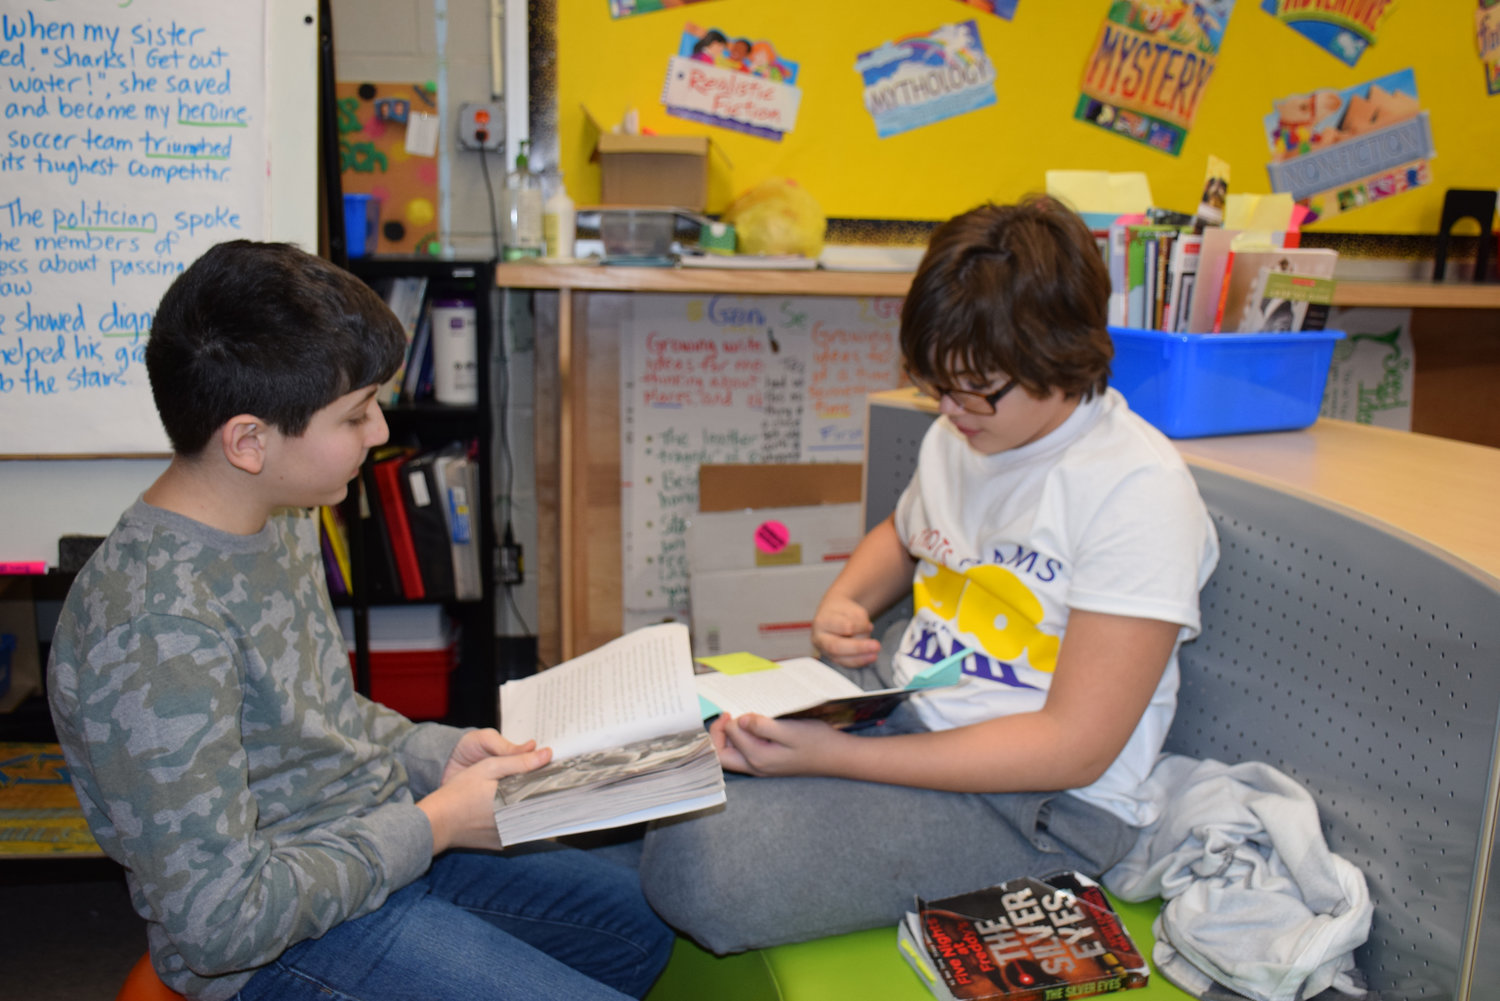 Wantagh Middle School students Anthony Marullo, left, and Nicholas Brown read aloud to each other.